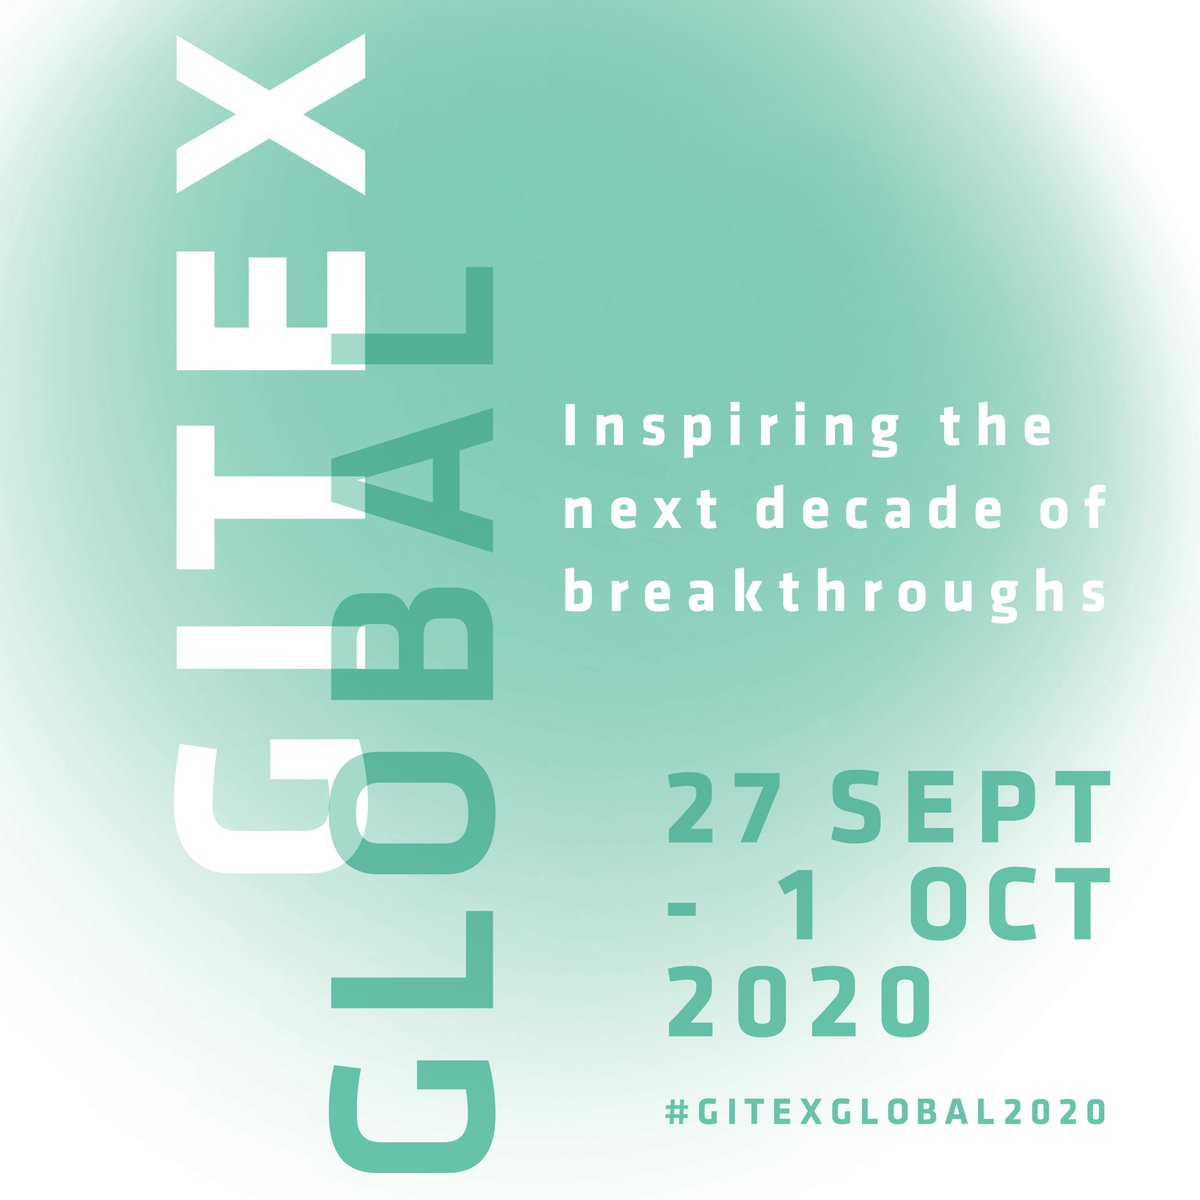 The 39th edition of GITEX Technology Week came to a close today! Massive thanks to everyone who helped make this a record breaking edition! 🙌Next year we will celebrate the 40th anniversary of GITEX with a rebranded edition #GITEXGlobalSee you there!#GITEXGlobal2020